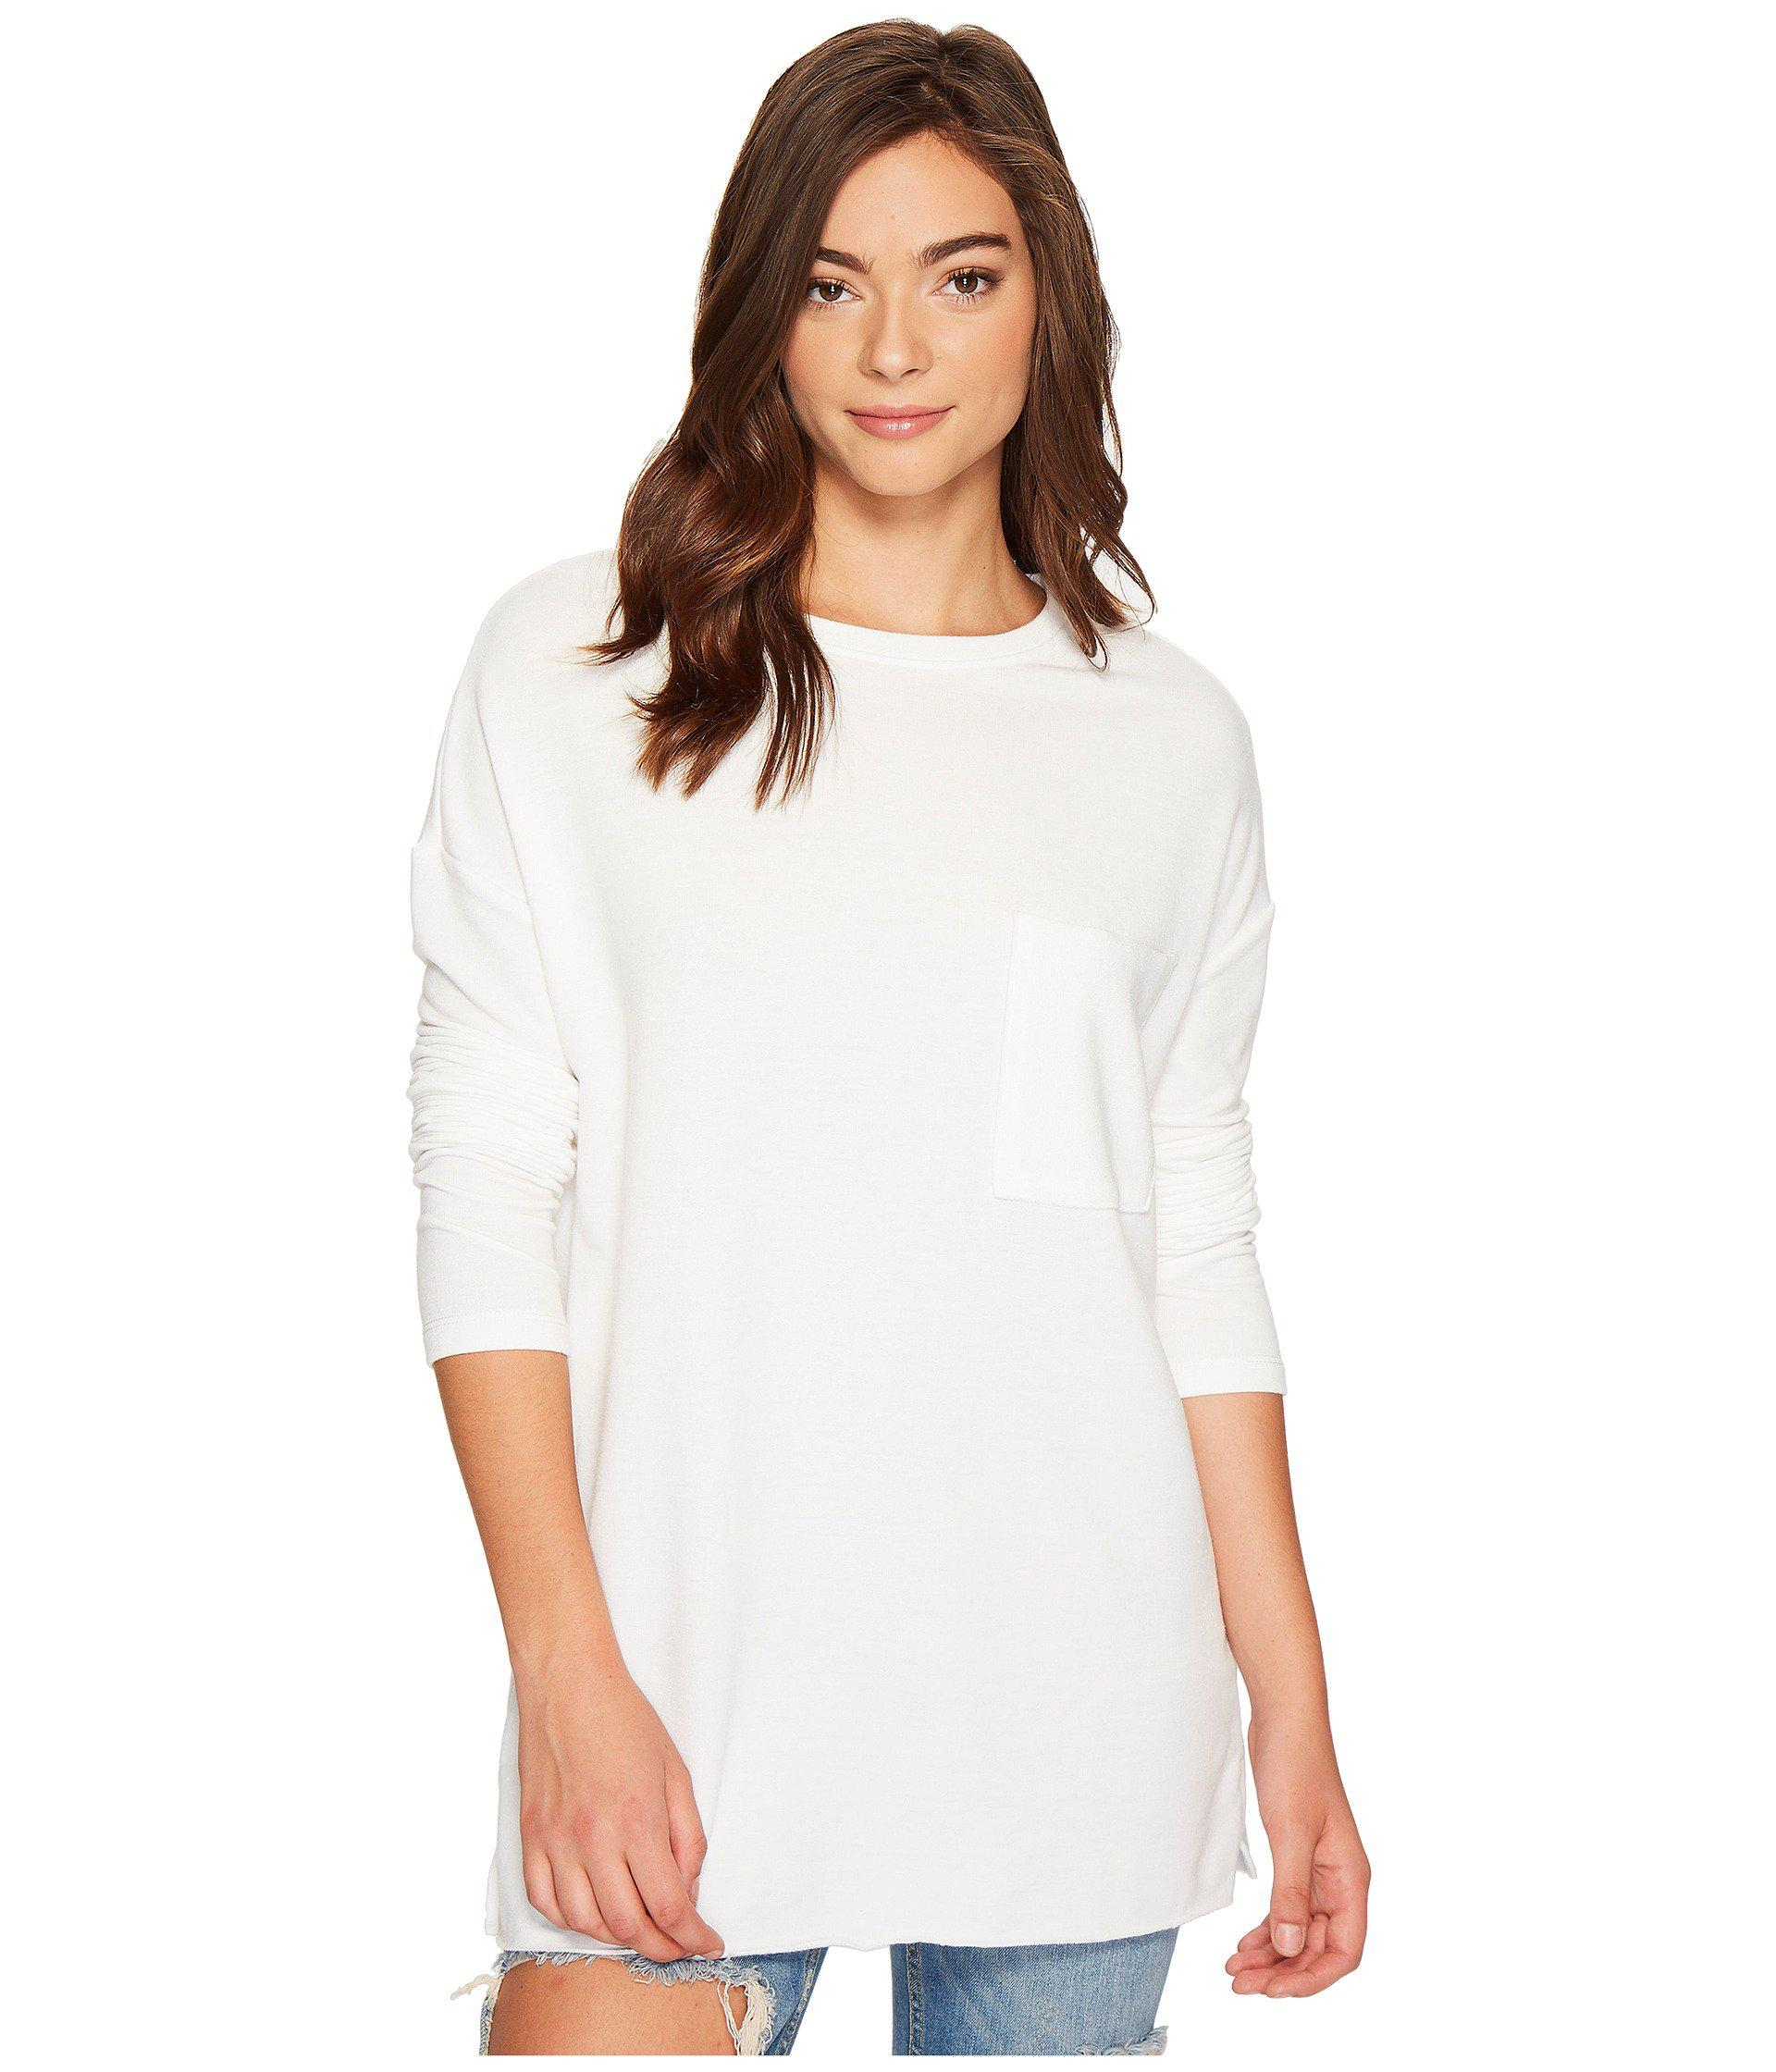 8792762592c93 Lyst - Culture Phit Orla Long Sleeve Top With Pocket in White